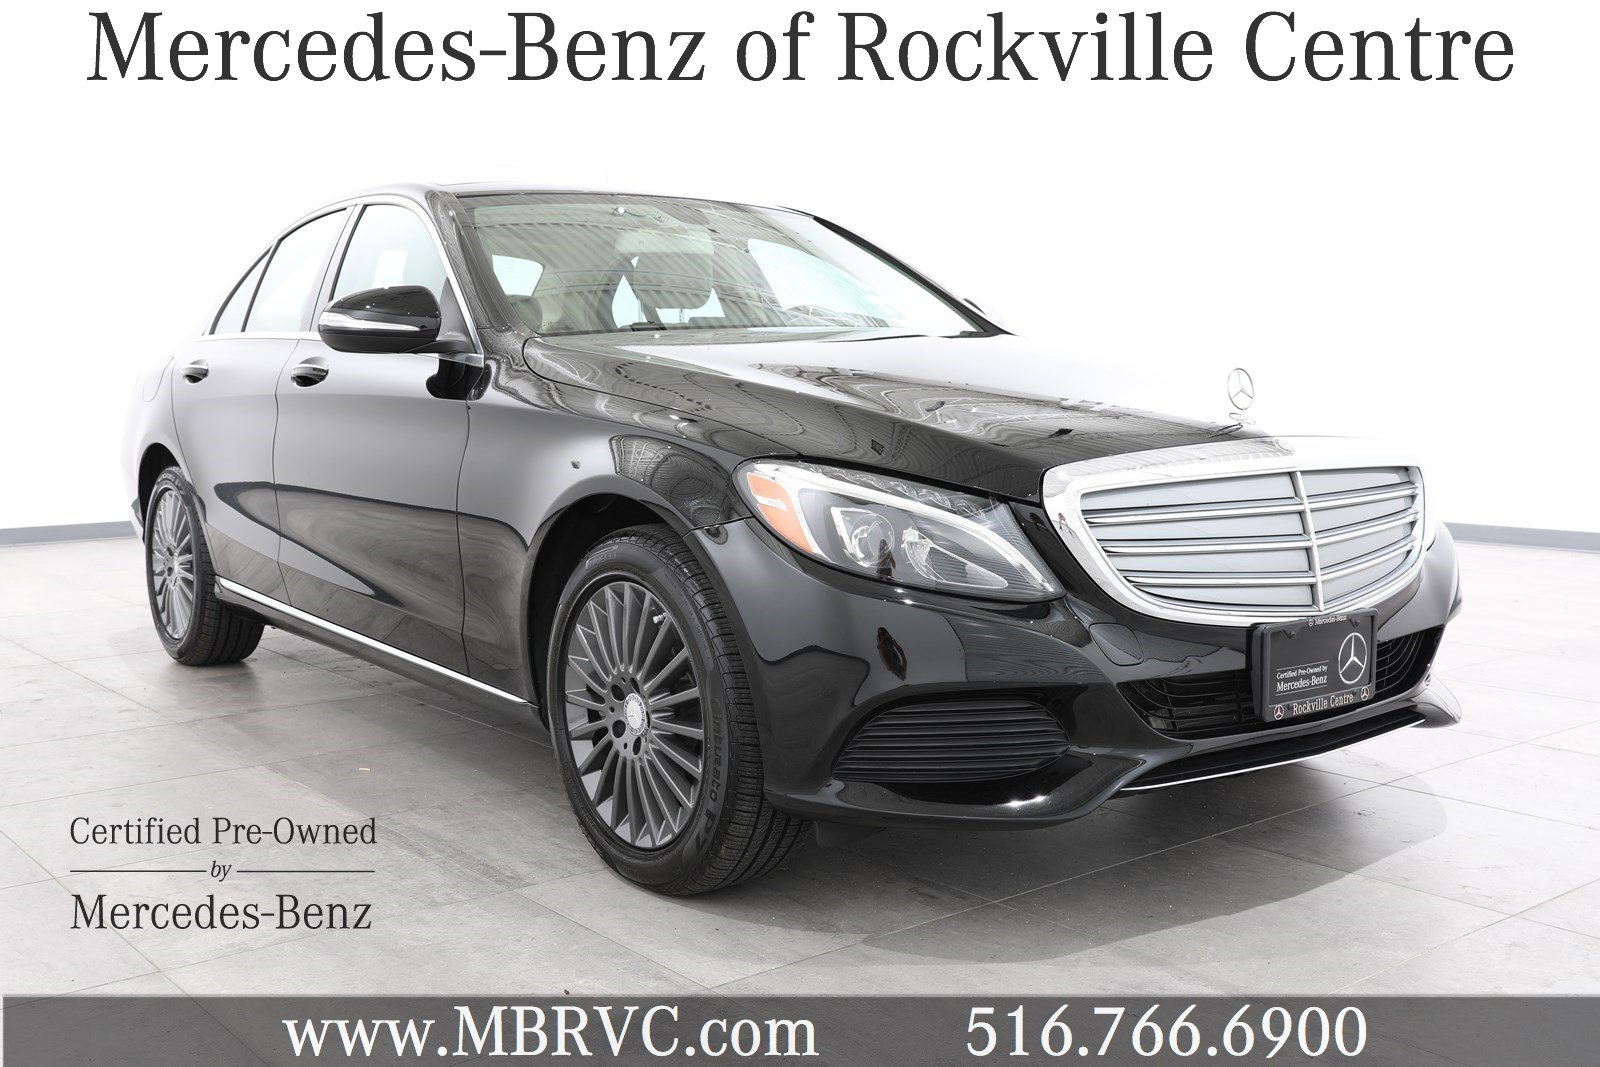 Pre owned vehicles mercedes benz of rockville centre for Mercedes benz pre owned vehicles